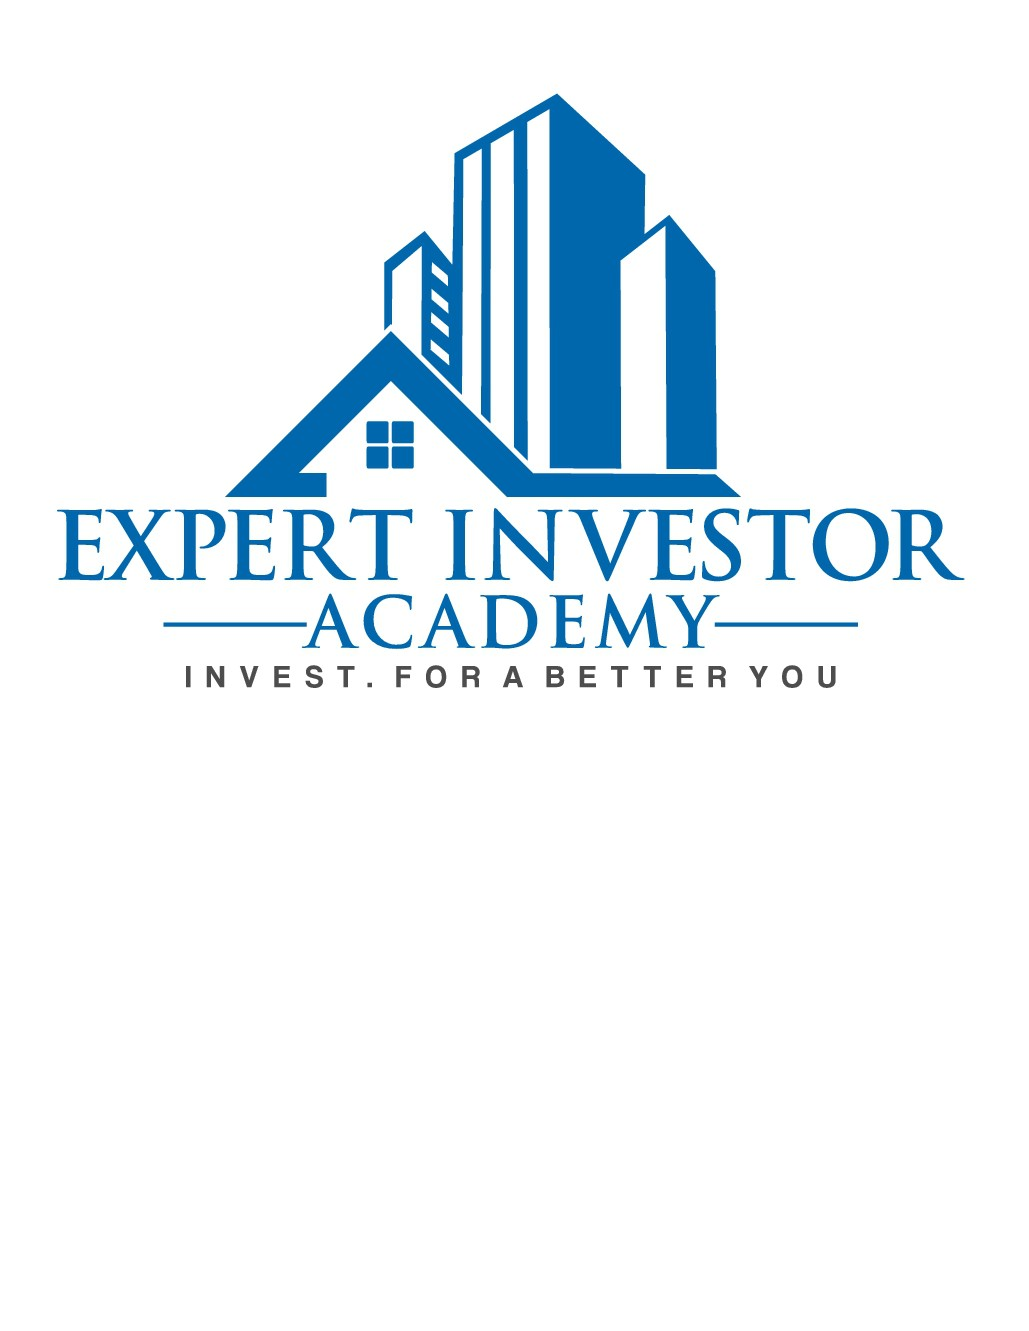 sleek & sophisticated Logo for invesment education firm needed asap in 7 days or less